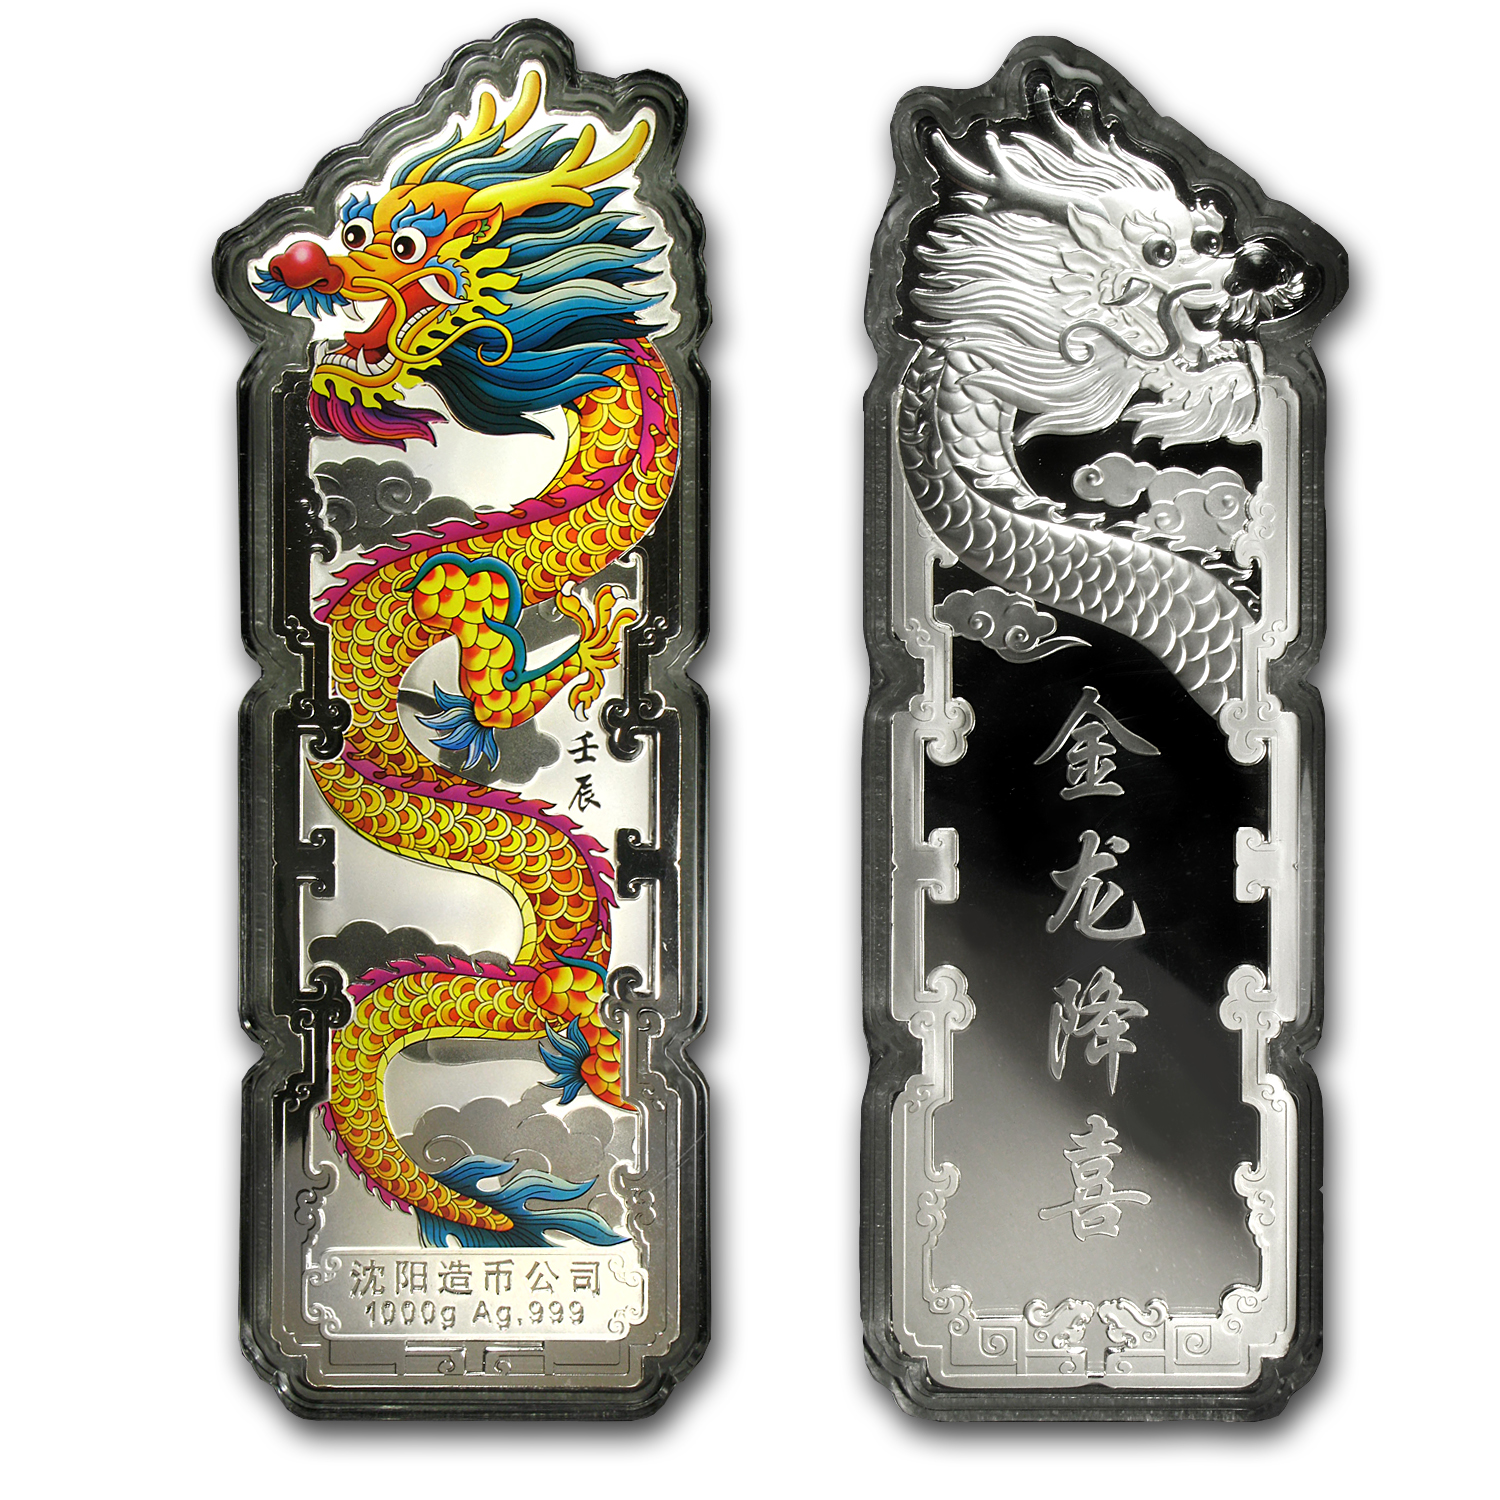 1000 gram Silver Bars - Year of the Dragon (2012/Colorized)